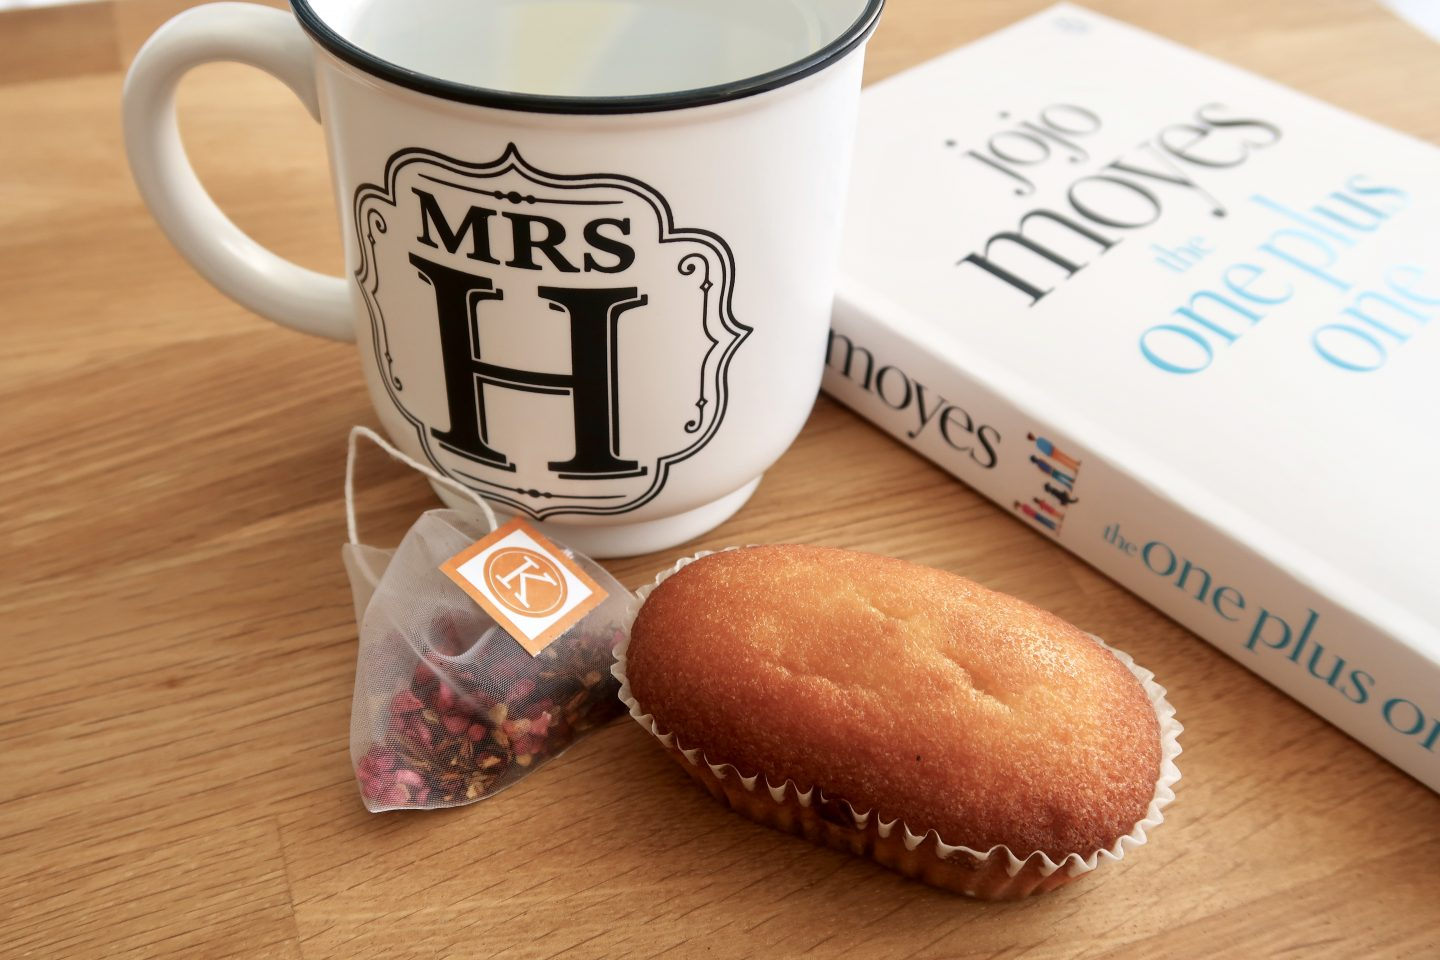 A mini loaf cake next to a mug and tea bag with a book in the background